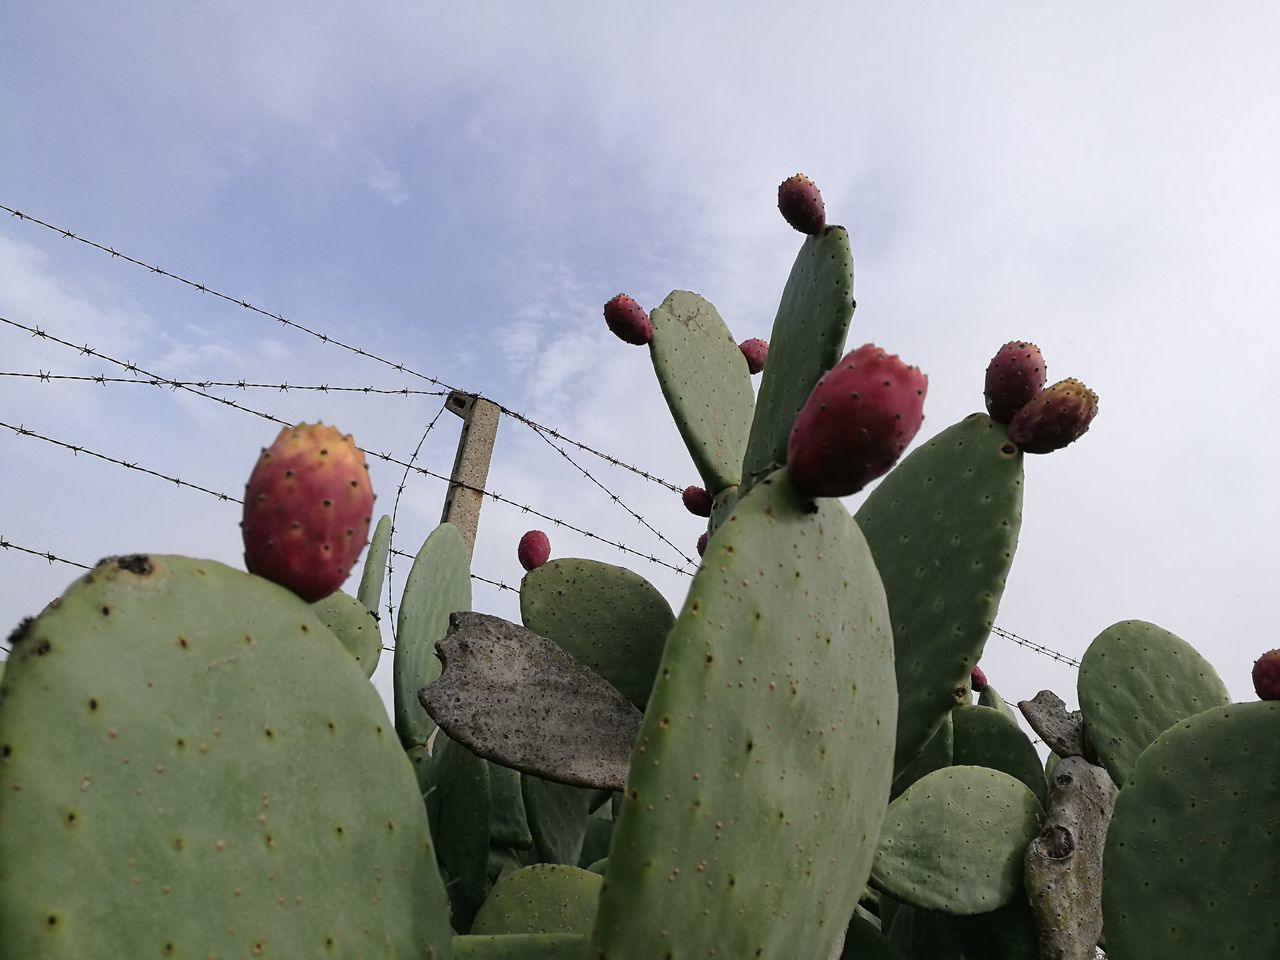 cactus, growth, nature, prickly pear cactus, thorn, no people, outdoors, beauty in nature, plant, day, green color, sky, fruit, low angle view, close-up